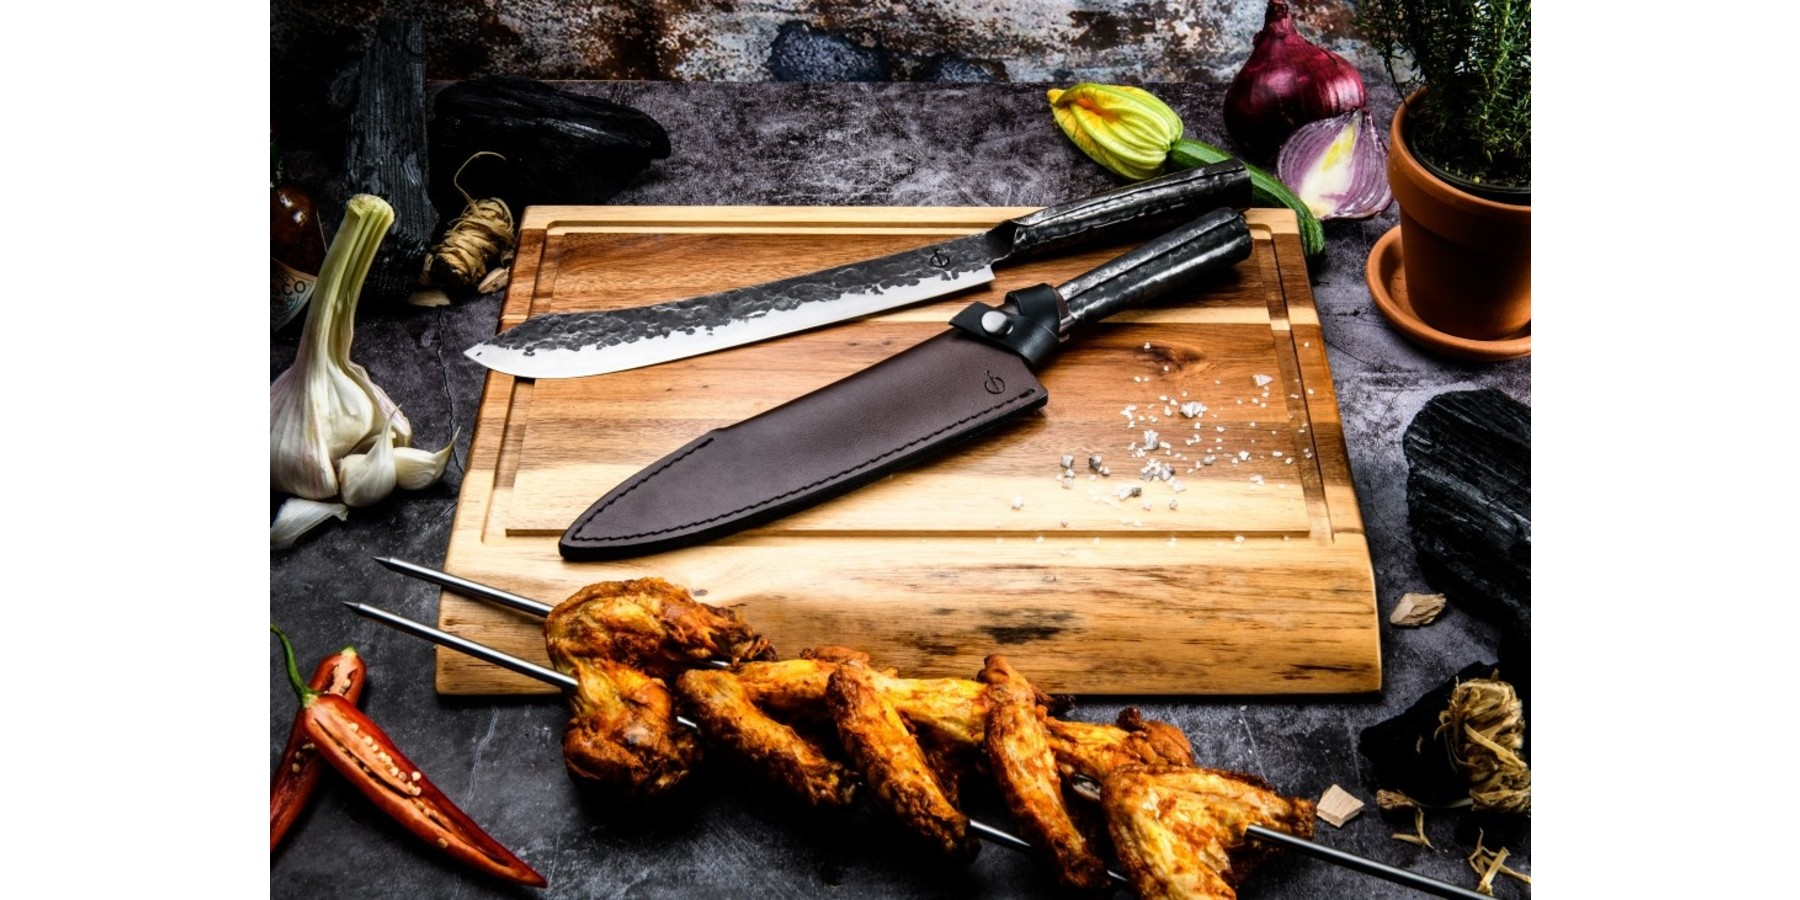 Brute Forged Butcher knife